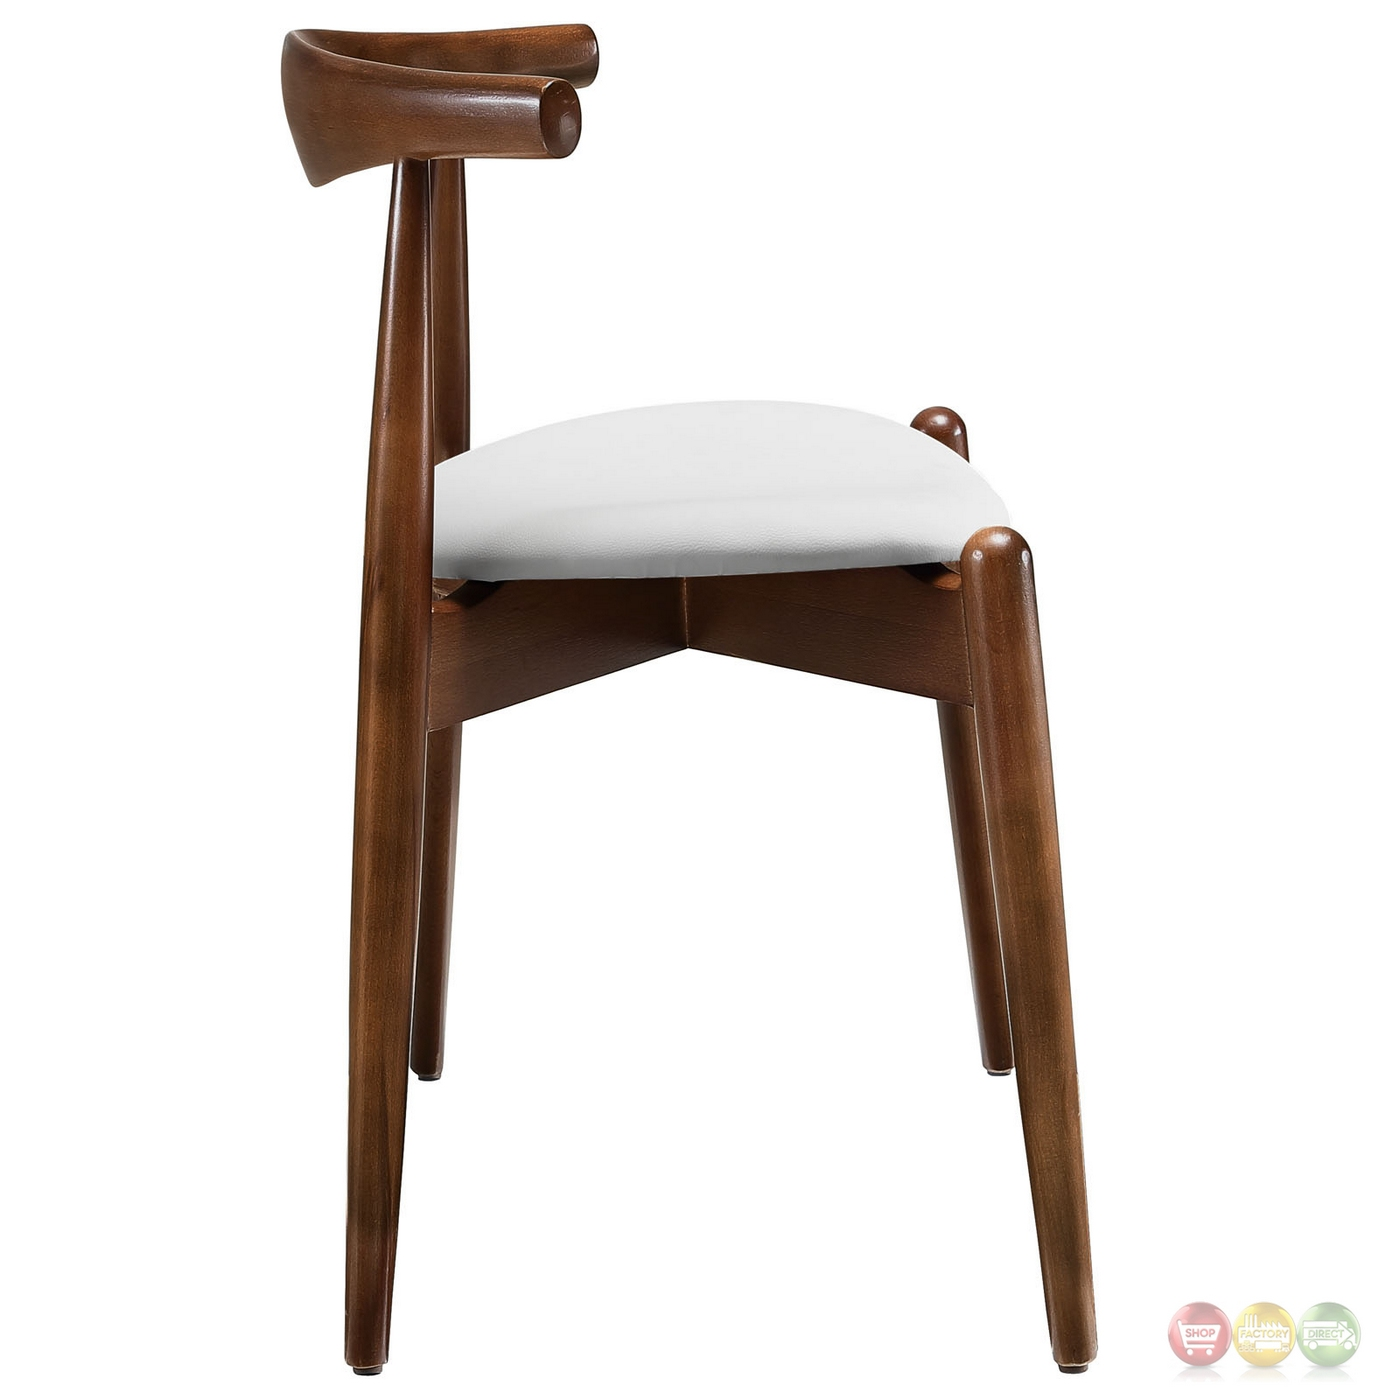 Wonderful image of  Wood Dining Side Chairs w/ Upholstered Seats Dark Walnut White with #3E2415 color and 1400x1400 pixels